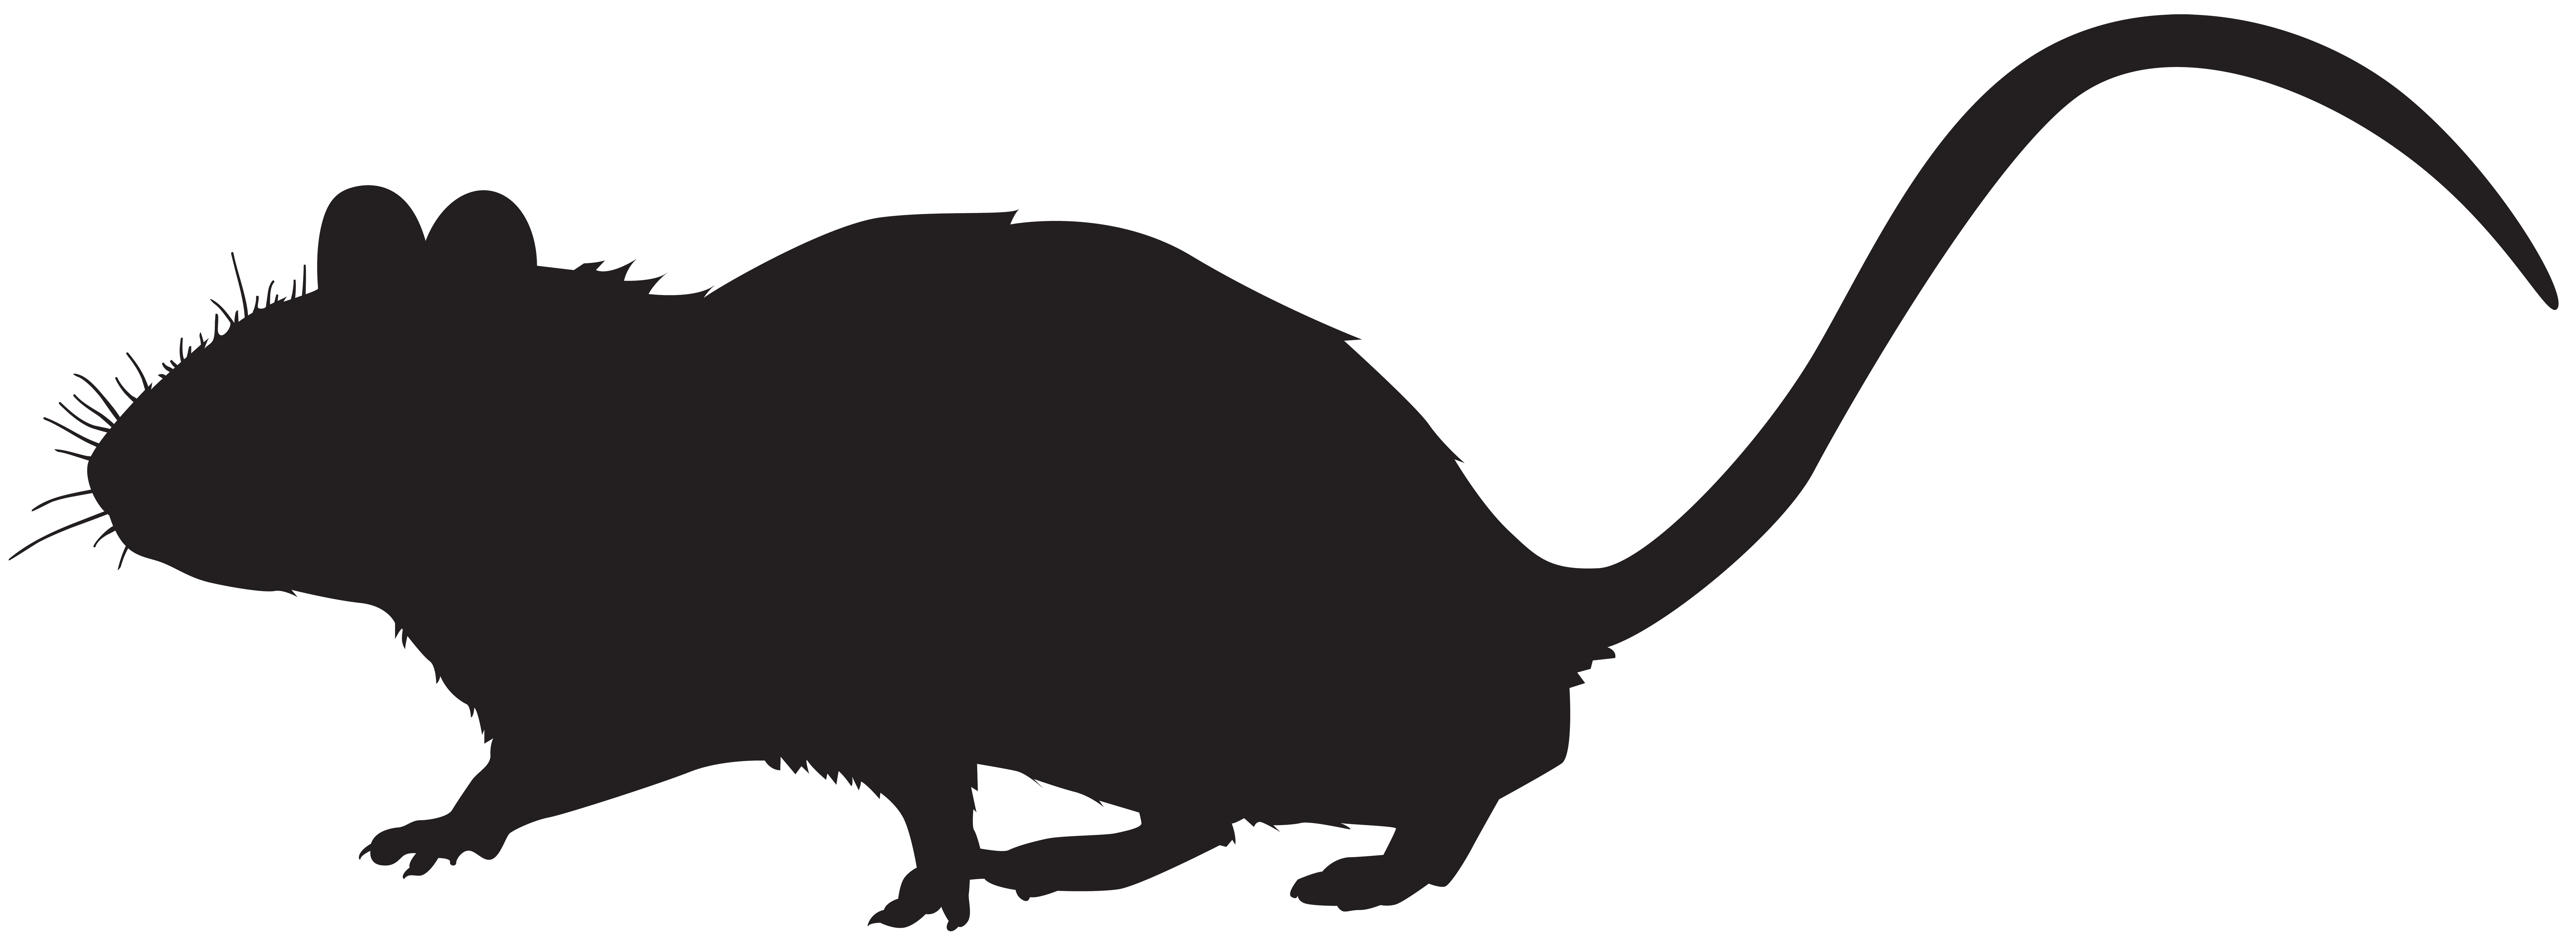 Mouse Silhouette PNG Clip Art Image.